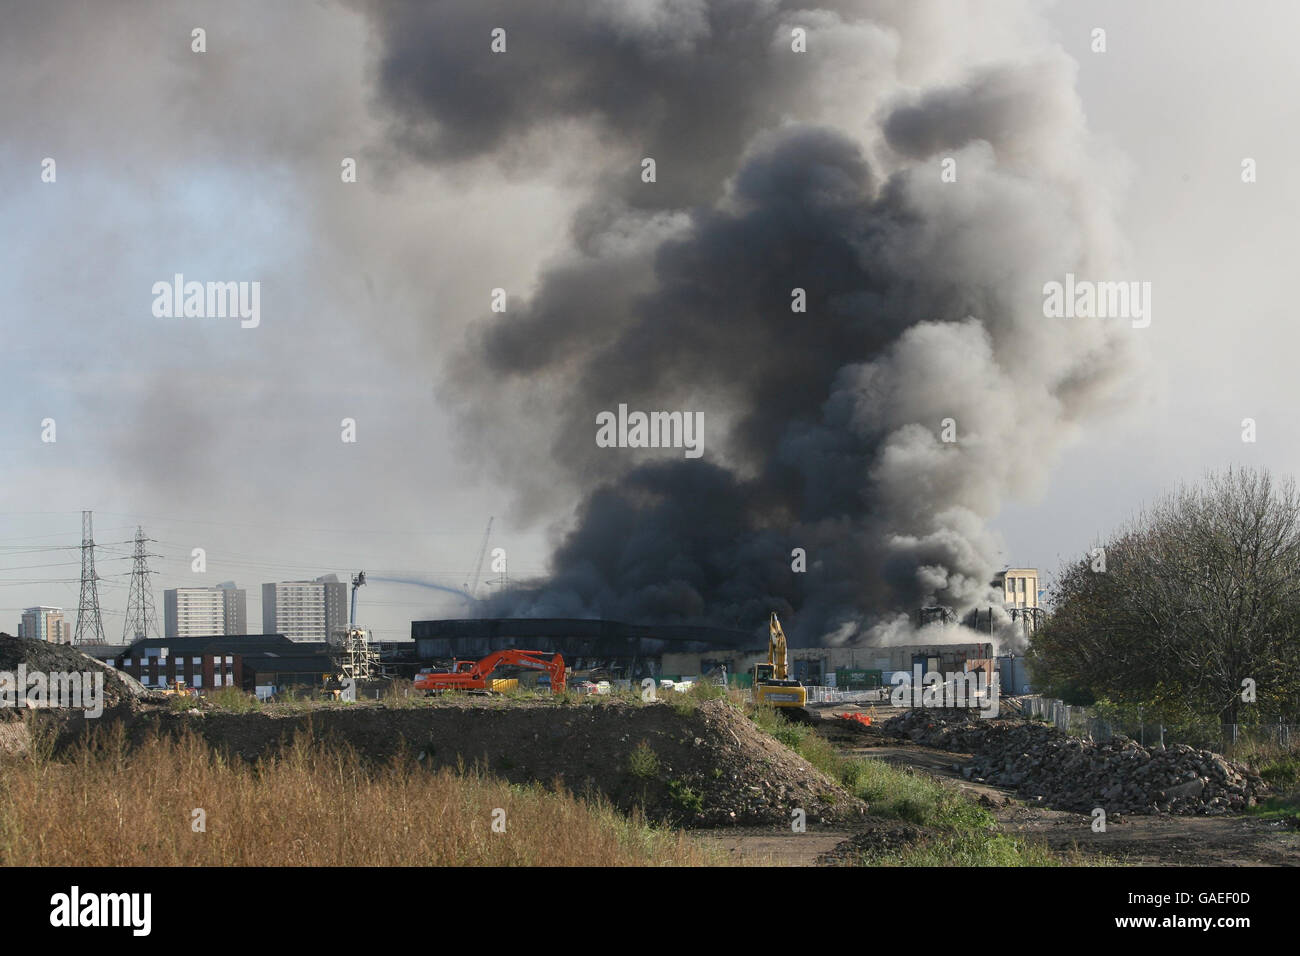 Smoke bellows from a huge fire on the 2012 Olympic site in Stratford, east London. Stock Photo